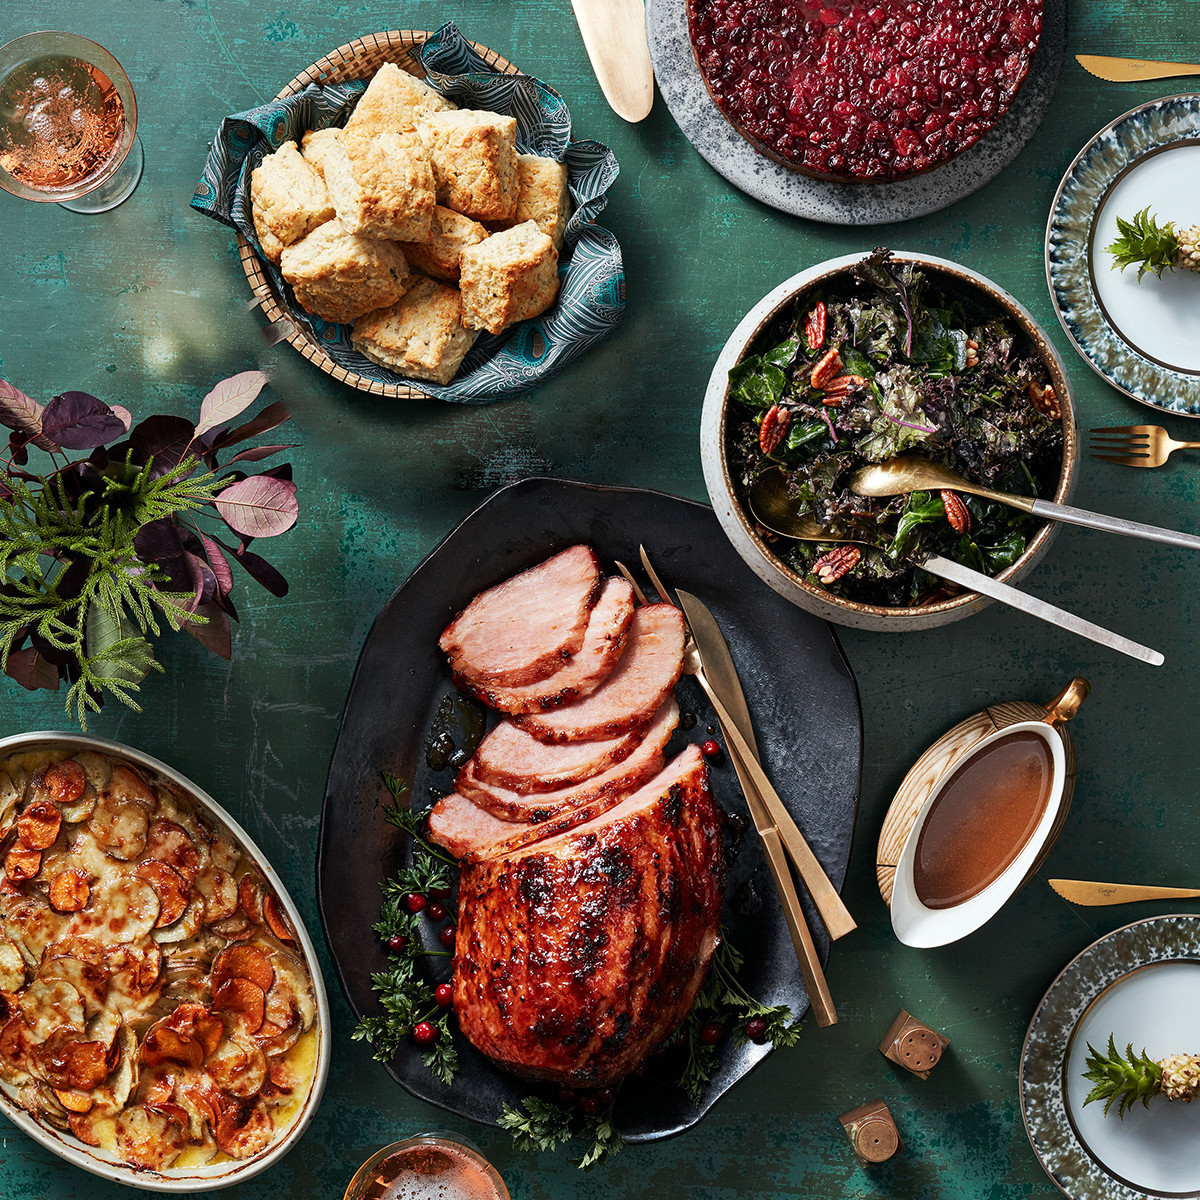 Christmas Ham Dinner Menu  Christmas Dinner Menu with Southern Style Ham & Biscuits